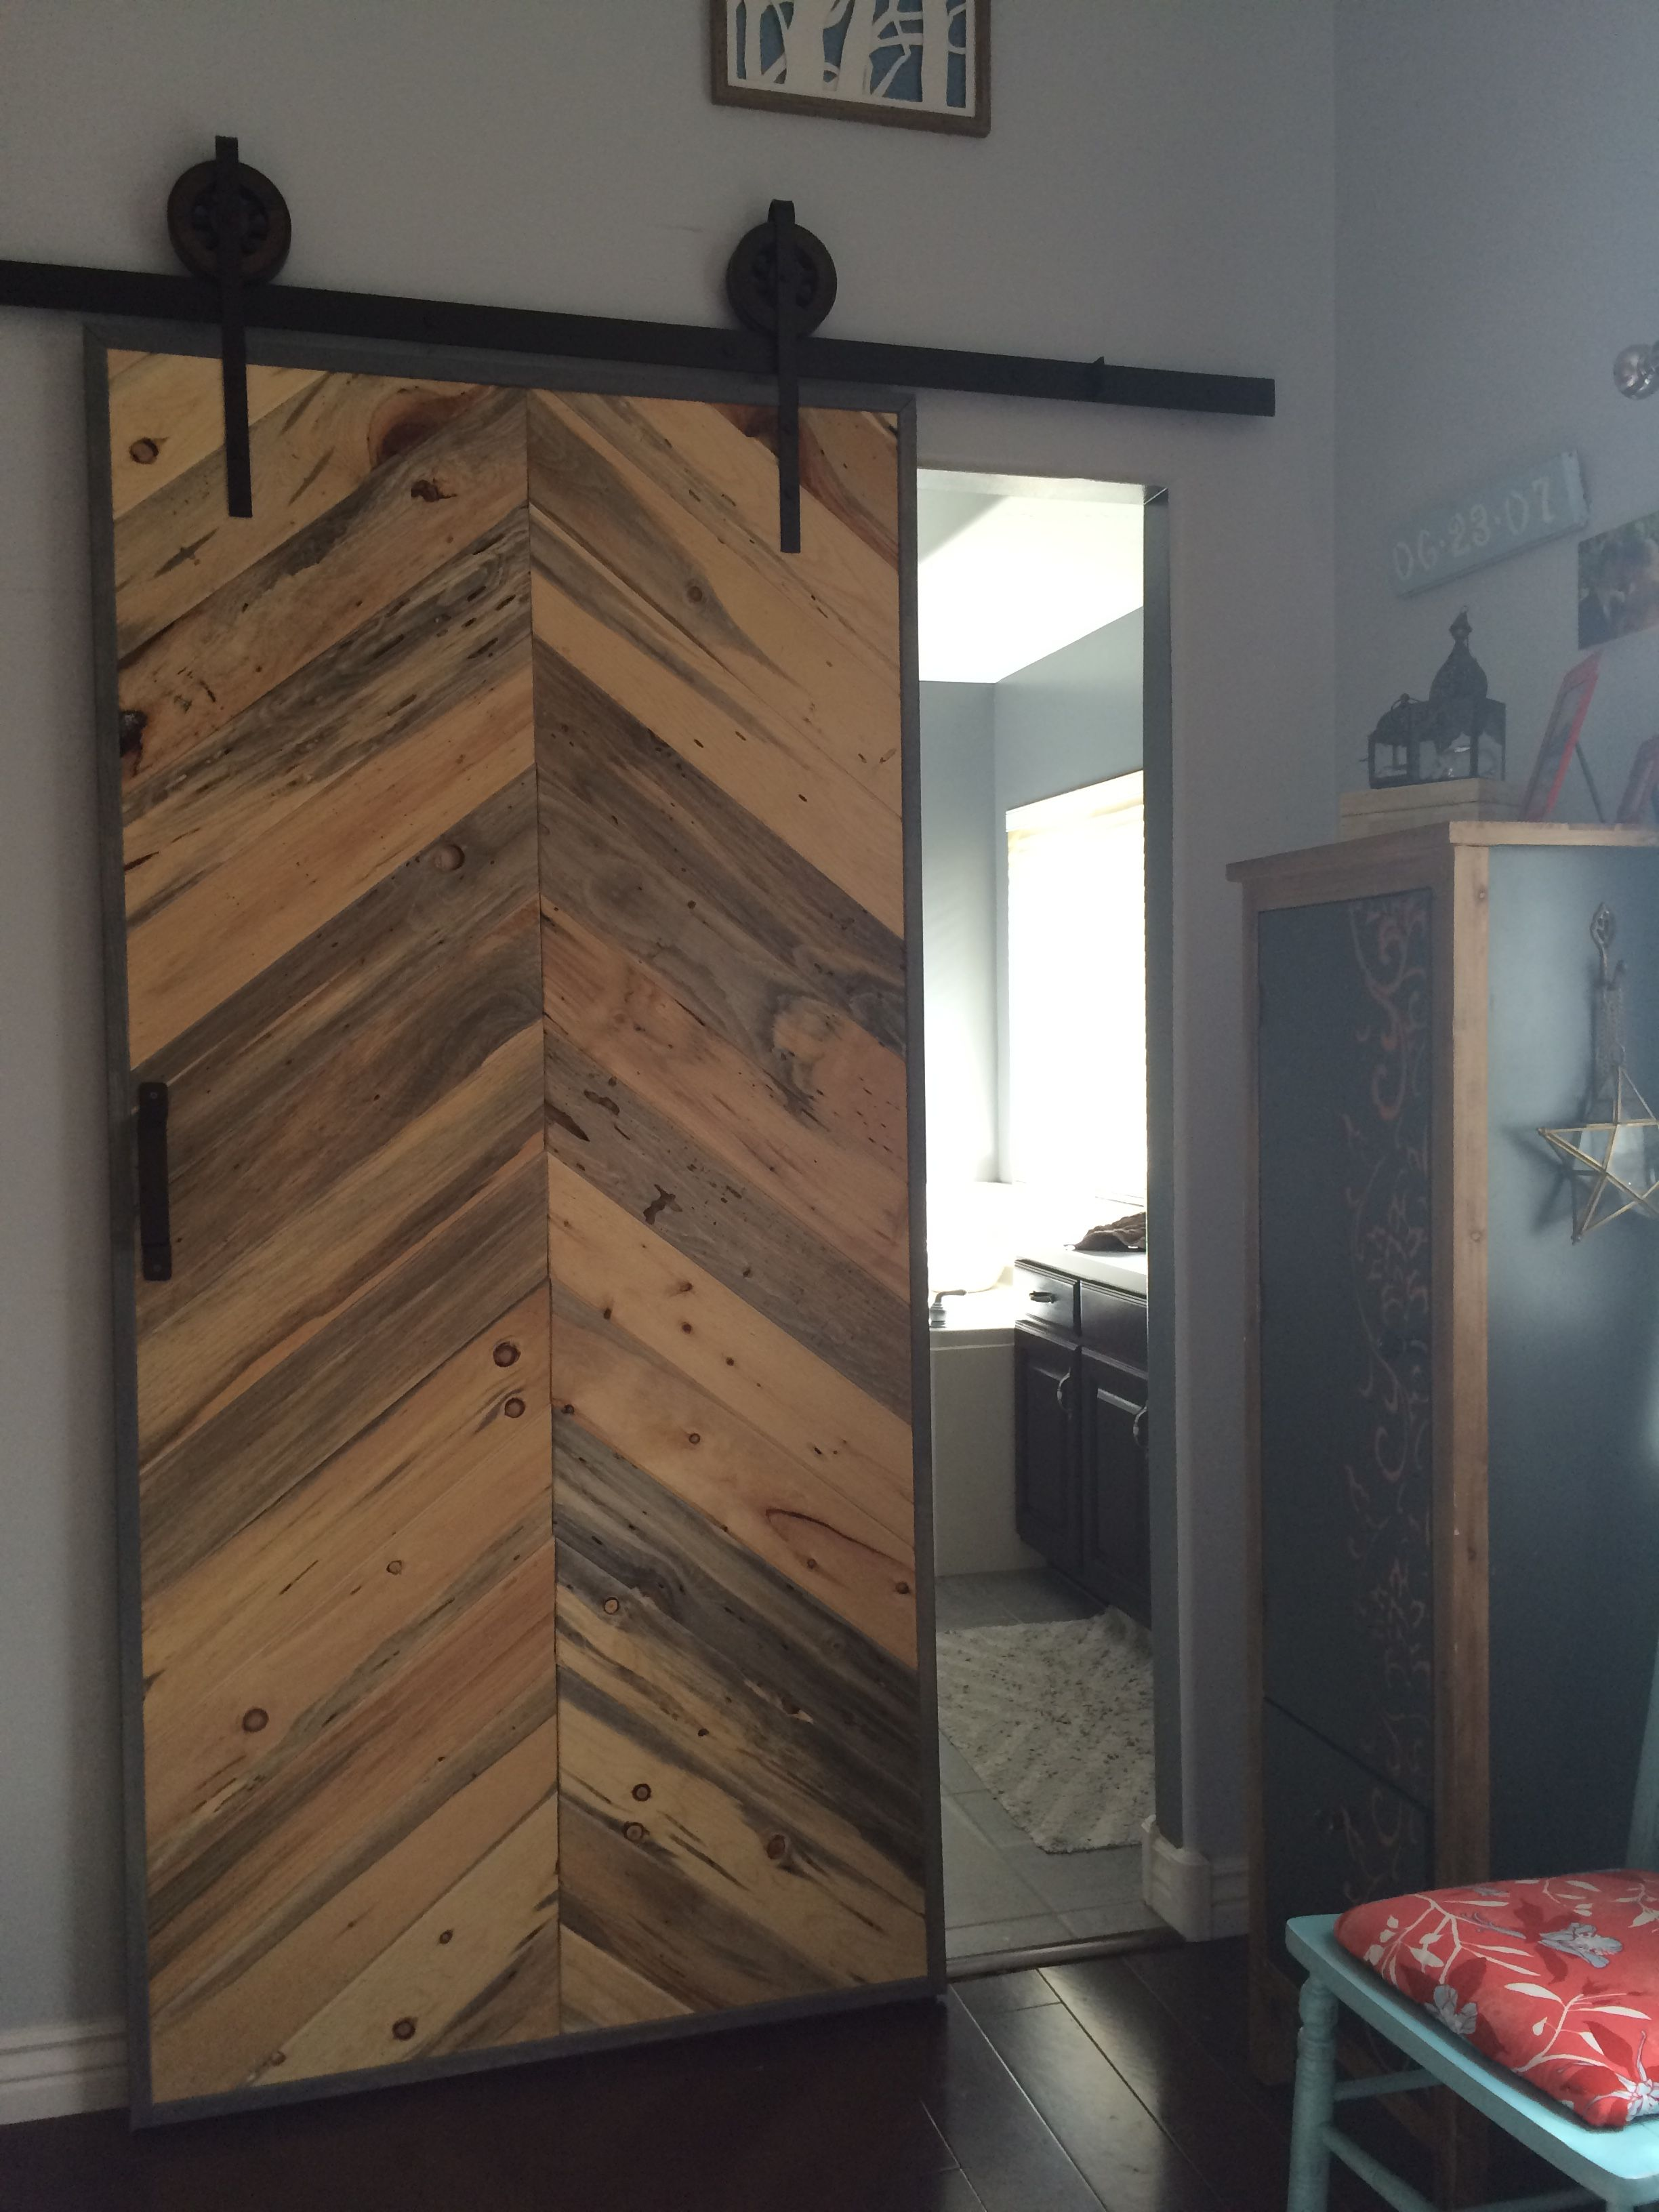 More blue pine used as a sliding barn door looks great ideas for